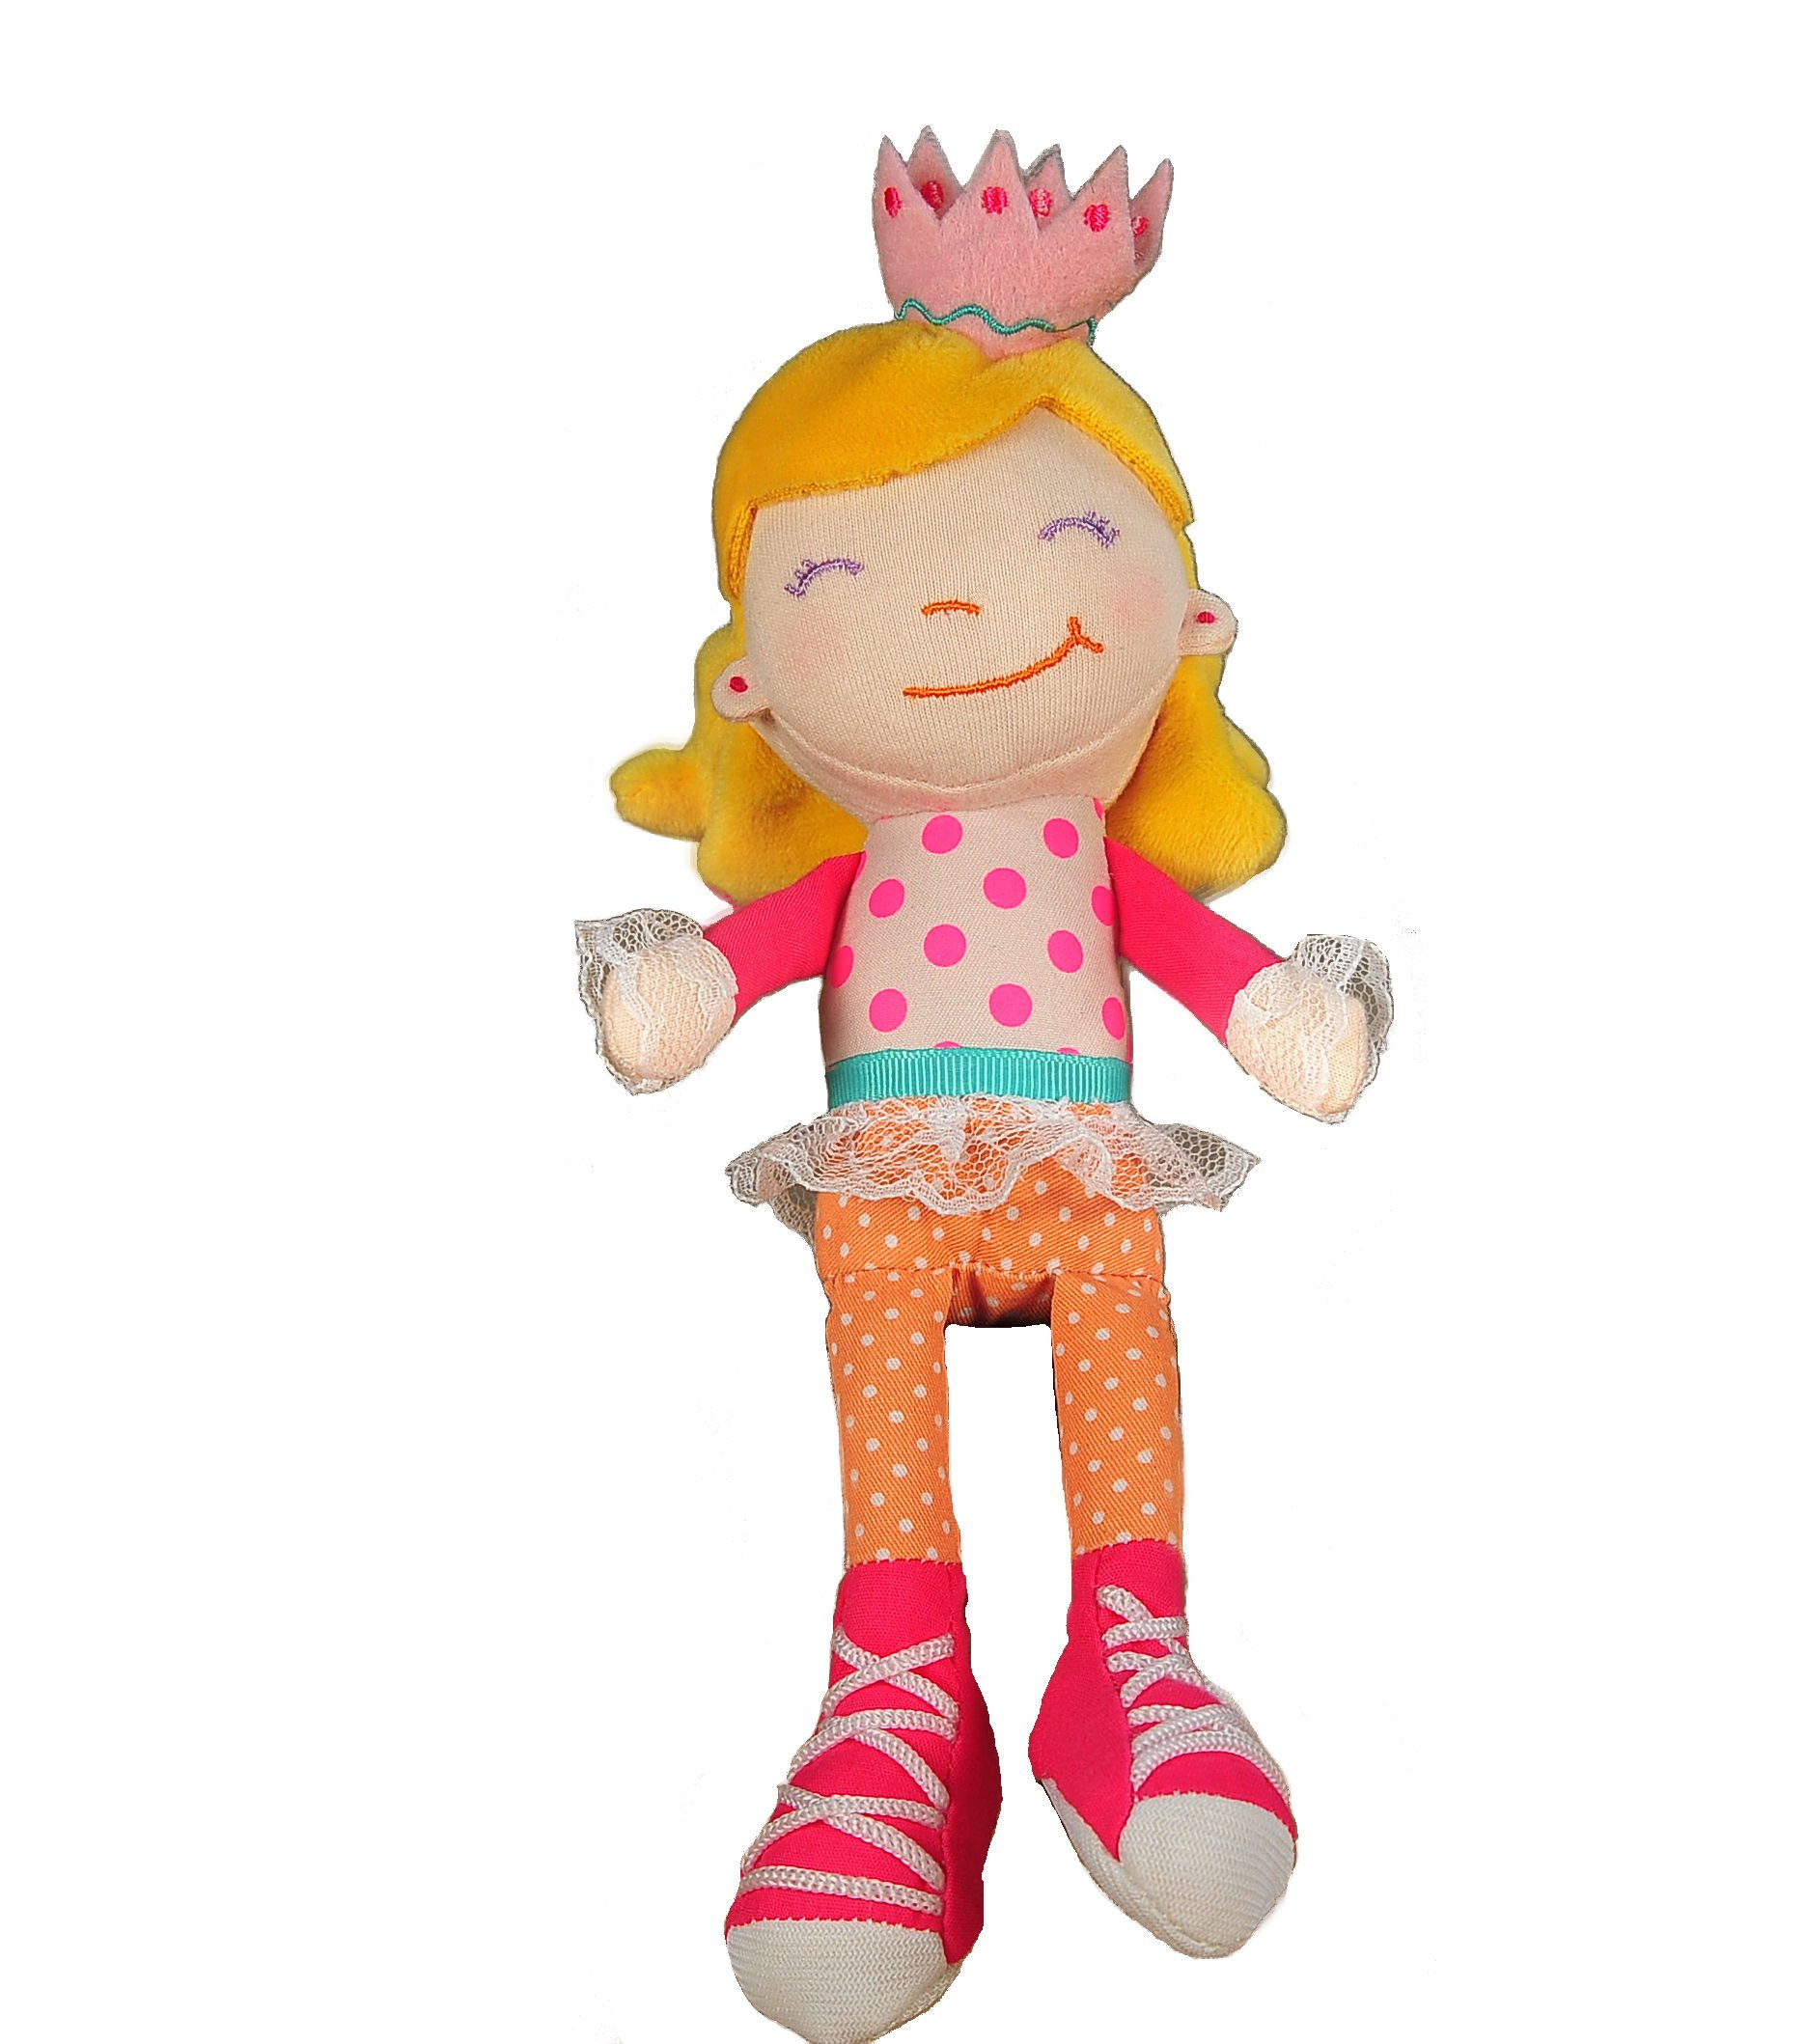 Tickle & Main Big Sister Gift Set- I Hereby Crown You Big Sister Book, Doll, and Child Size Crown by Tickle & Main (Image #6)